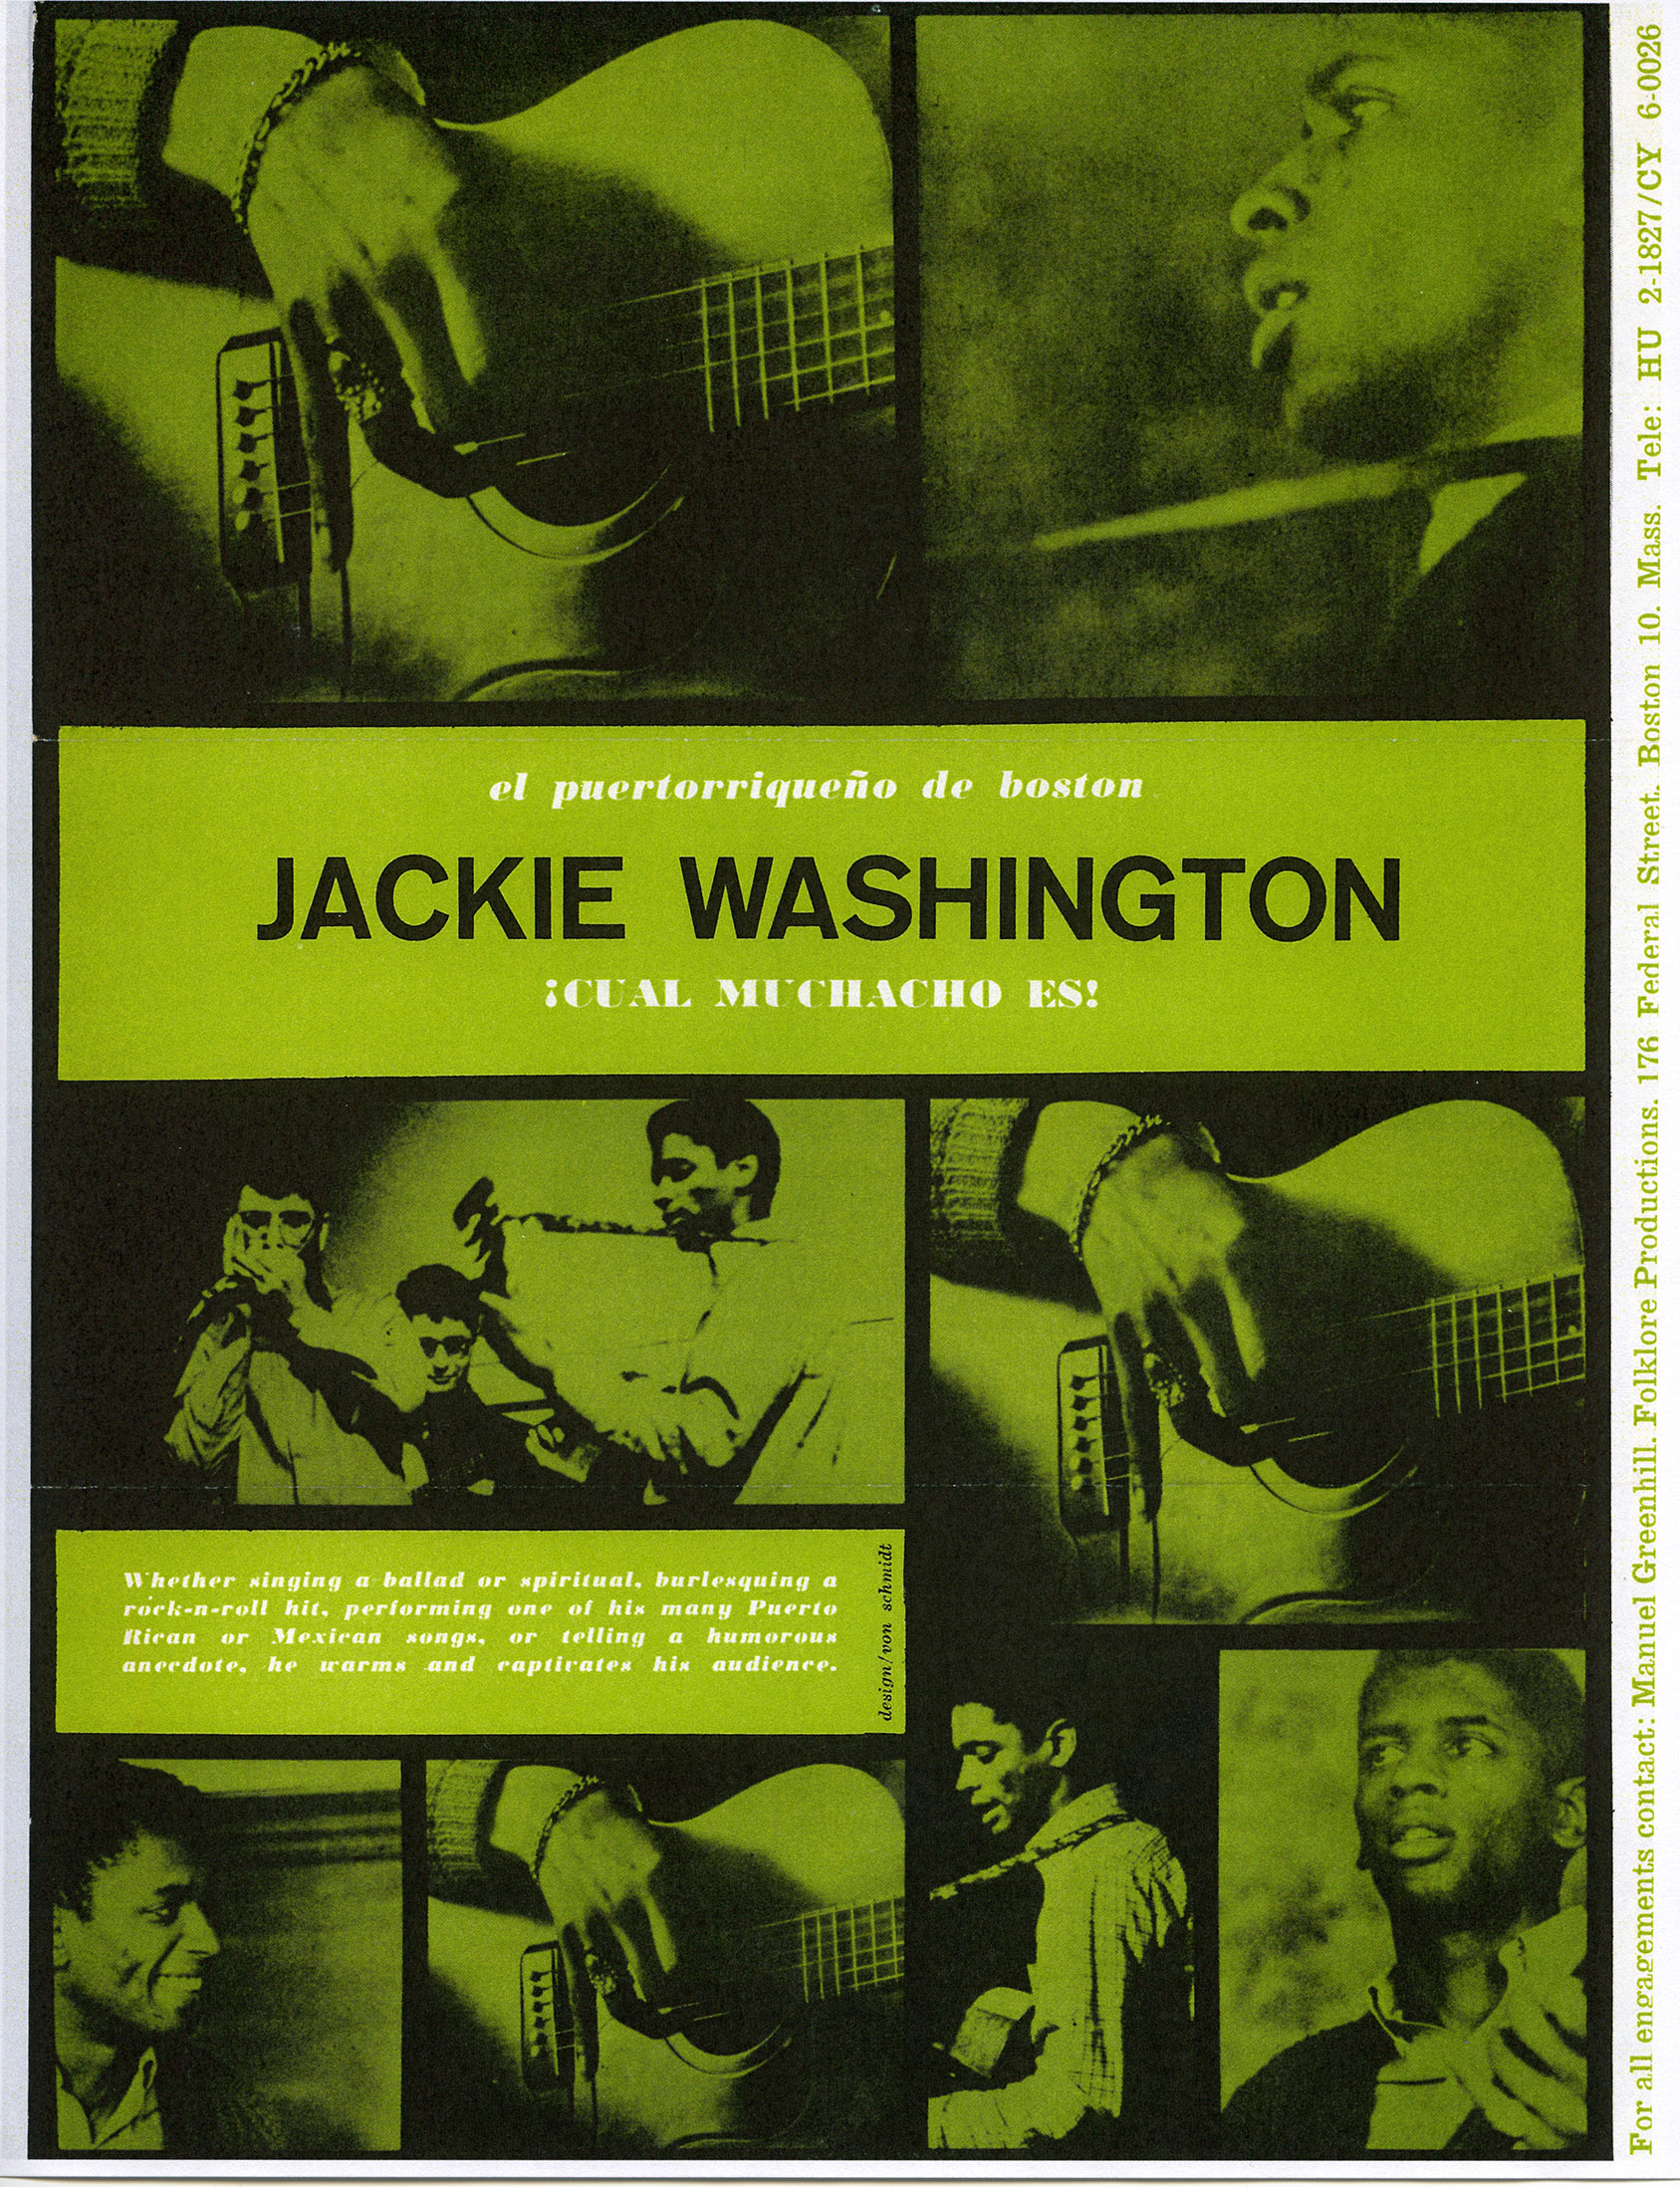 Image of Poster for performance by Jackie Wilson, 1964 (designed by Eric von Schmidt)